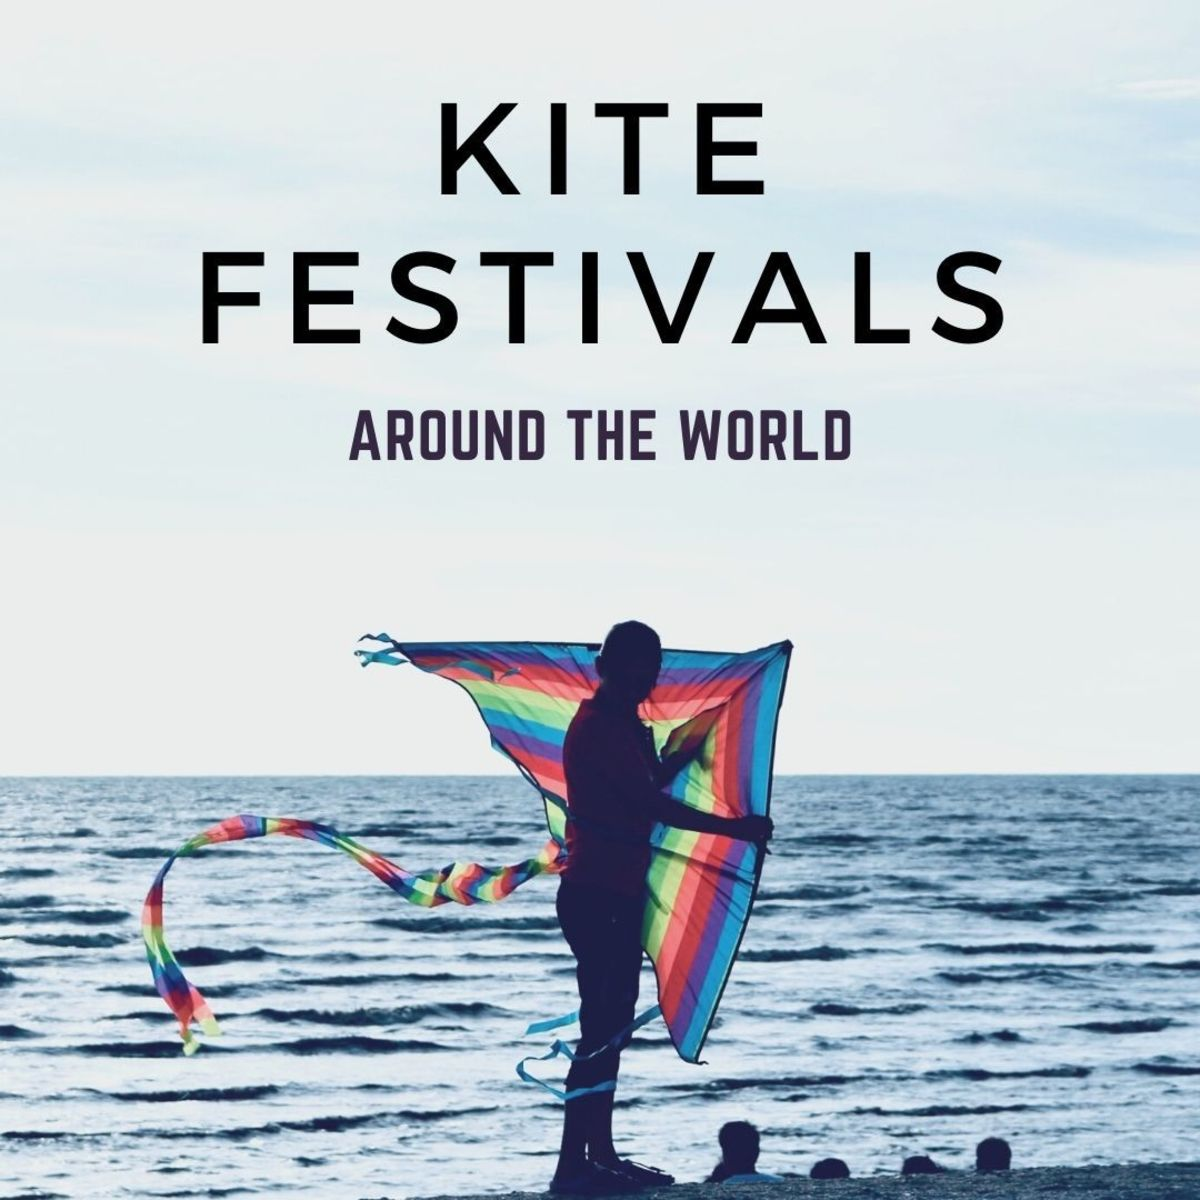 Learn about the five most popular kite festivals and the history of kites.